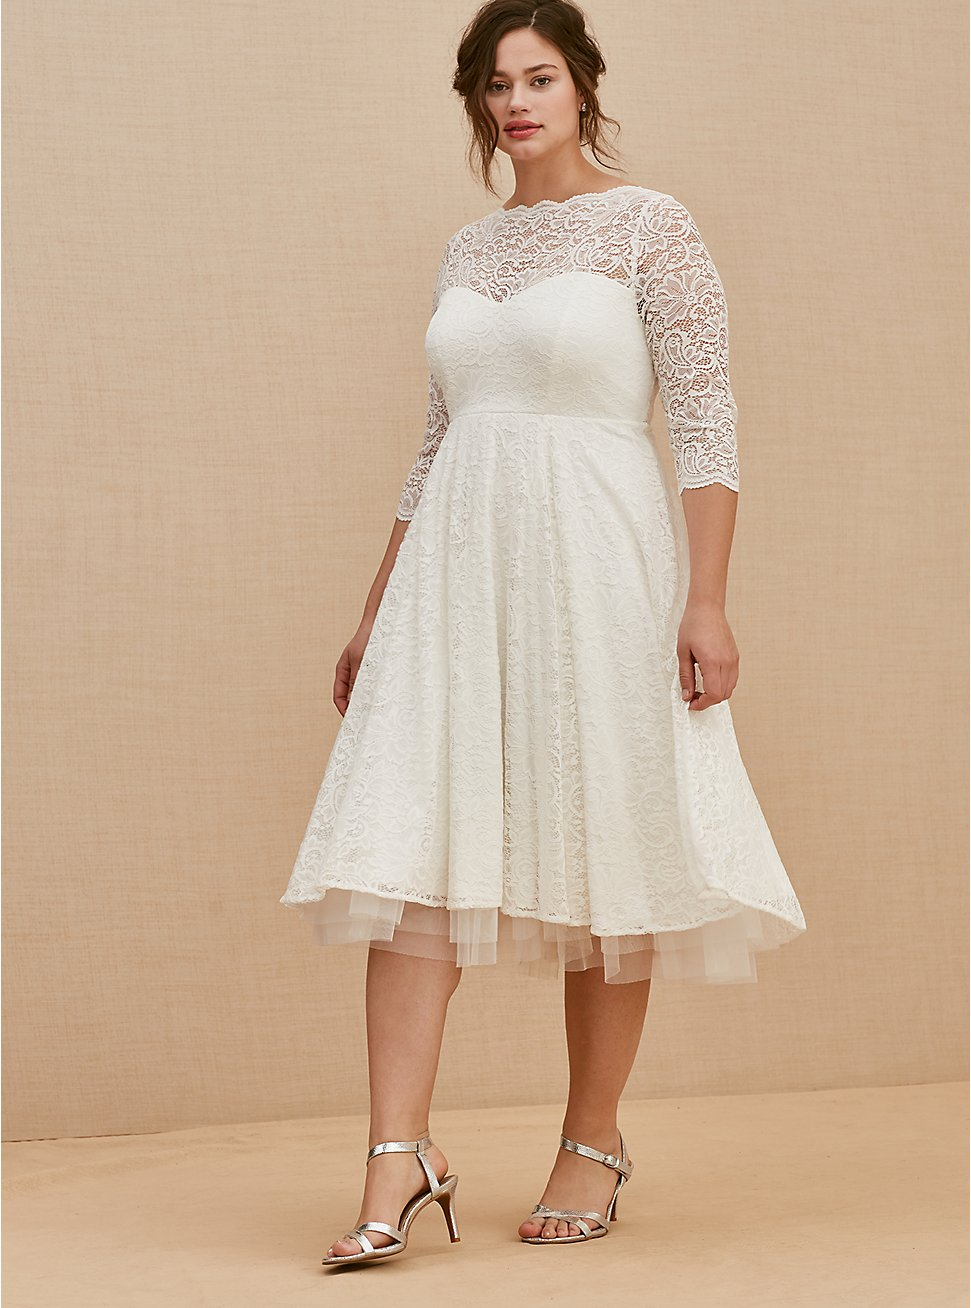 Ivory Lace Tea-Length Wedding Dress